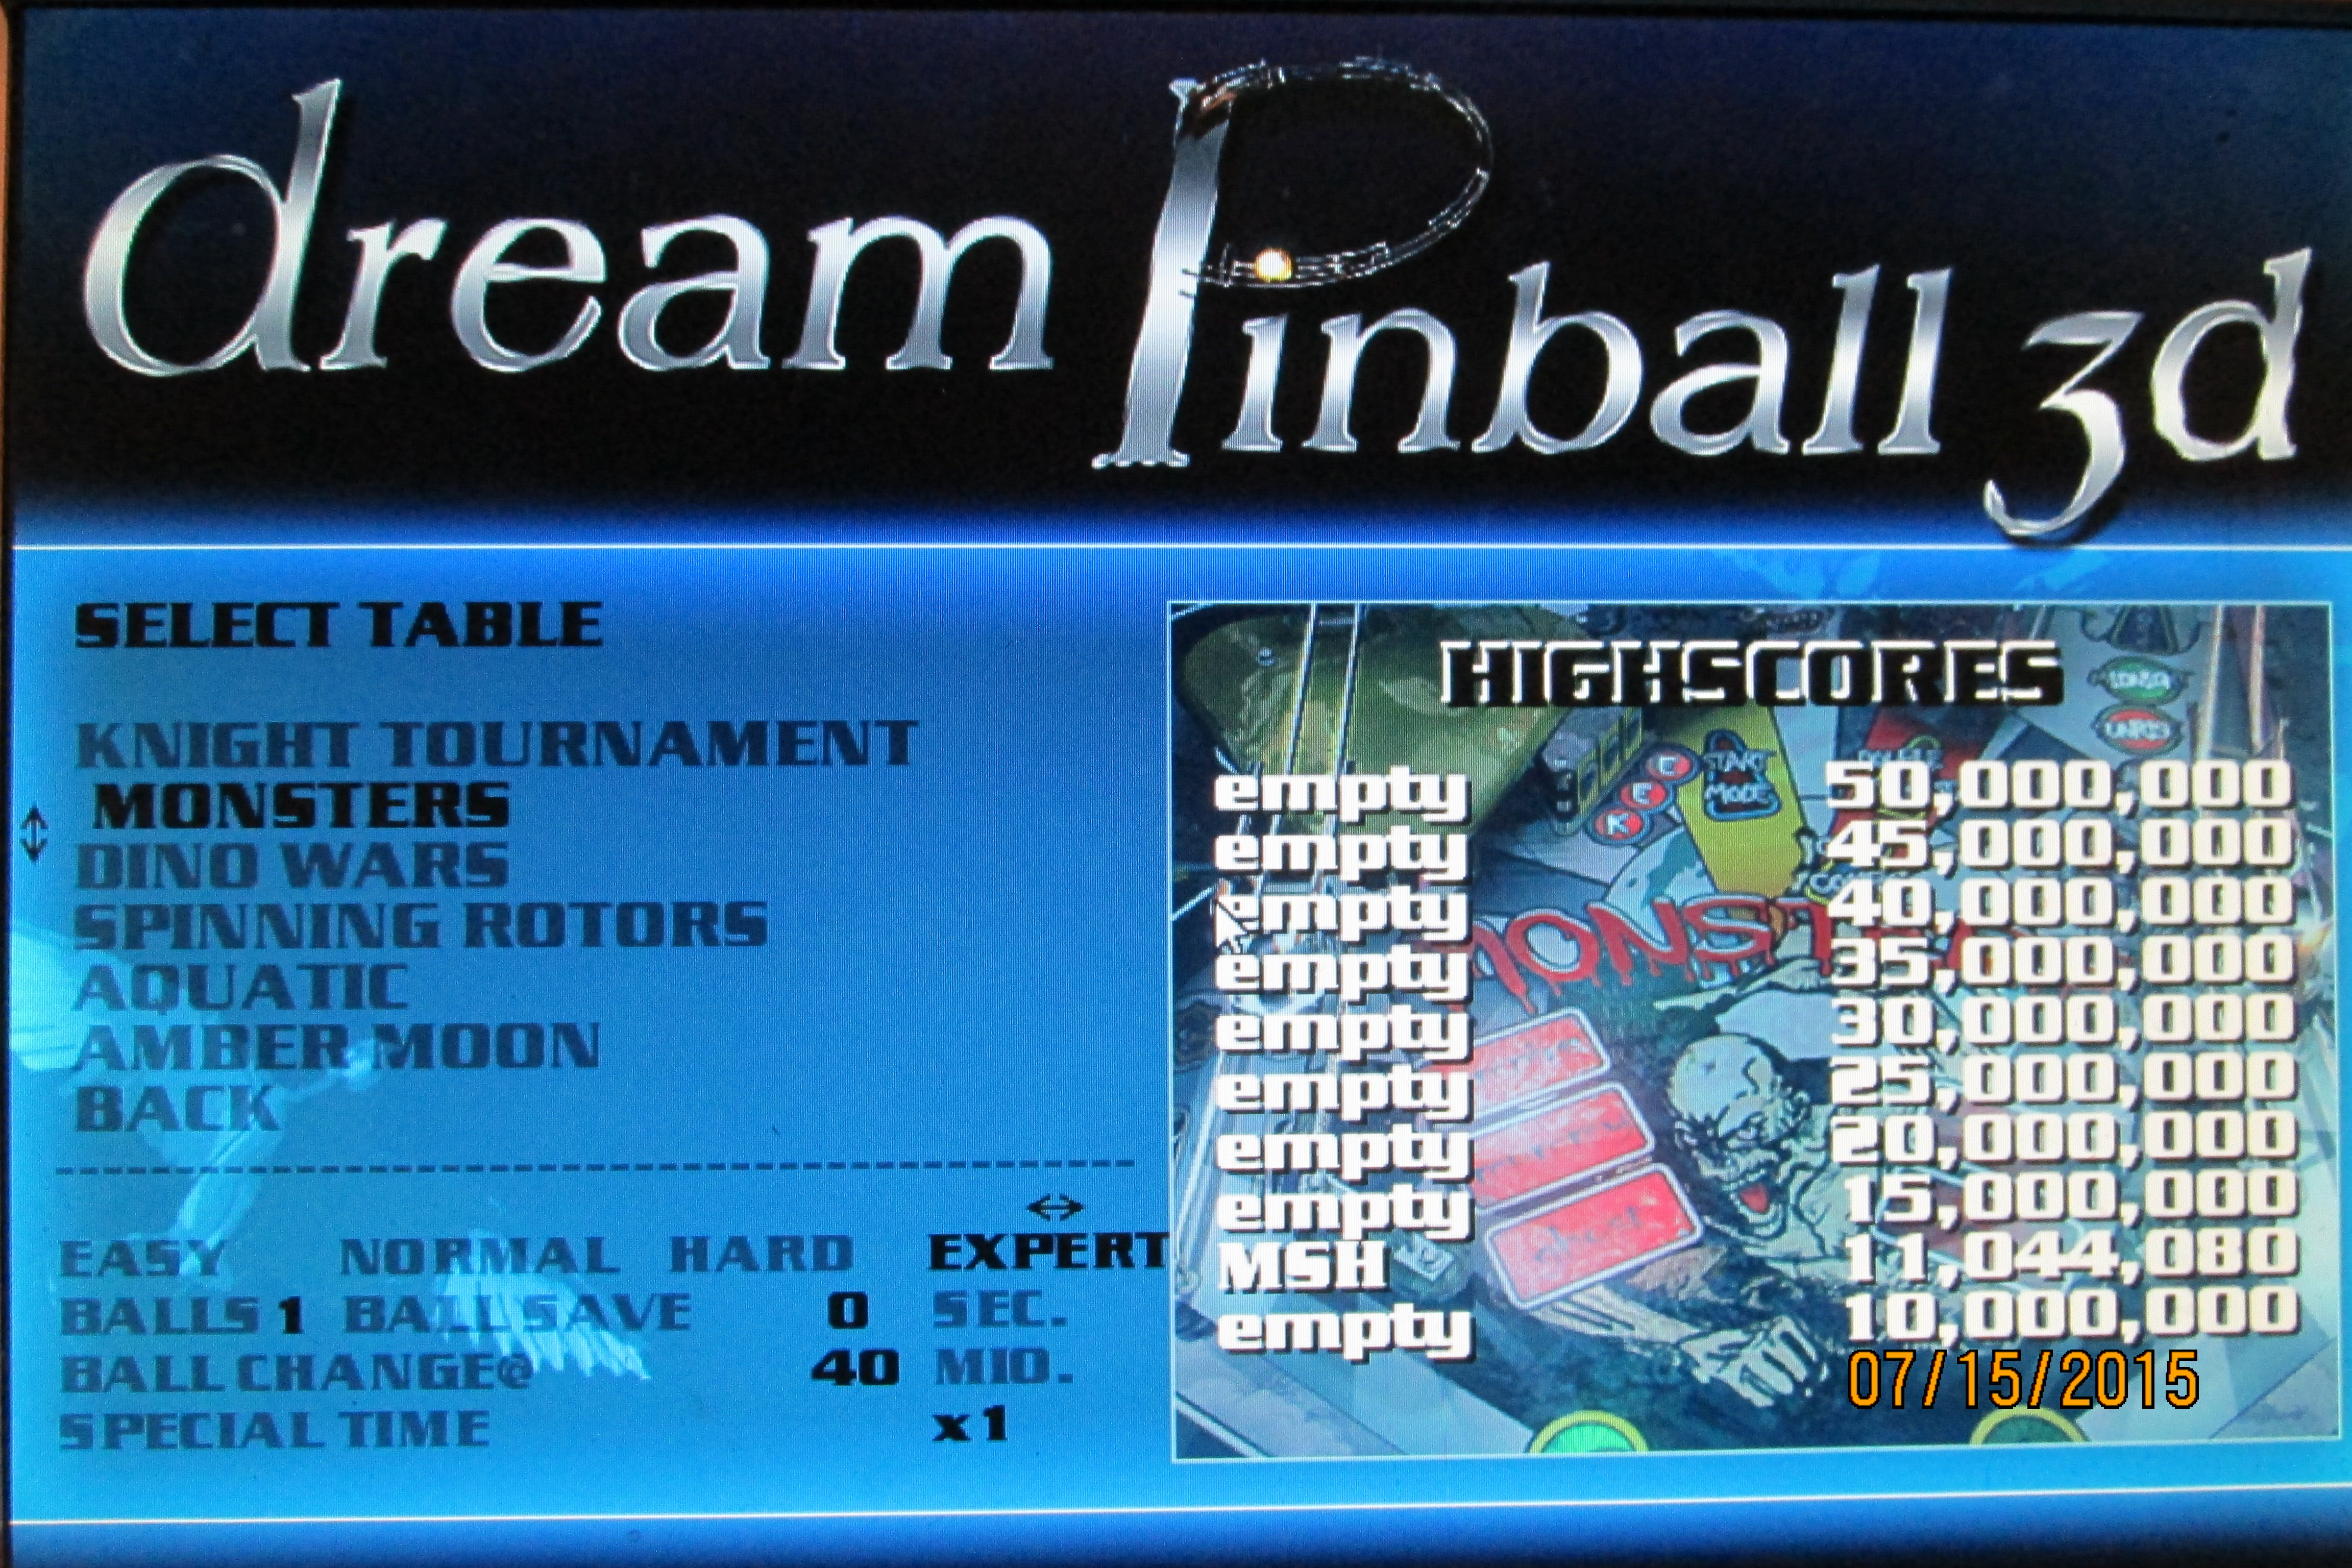 Mark: Dream Pinball 3D: Monsters [Expert] (PC) 11,044,080 points on 2015-07-19 01:38:49